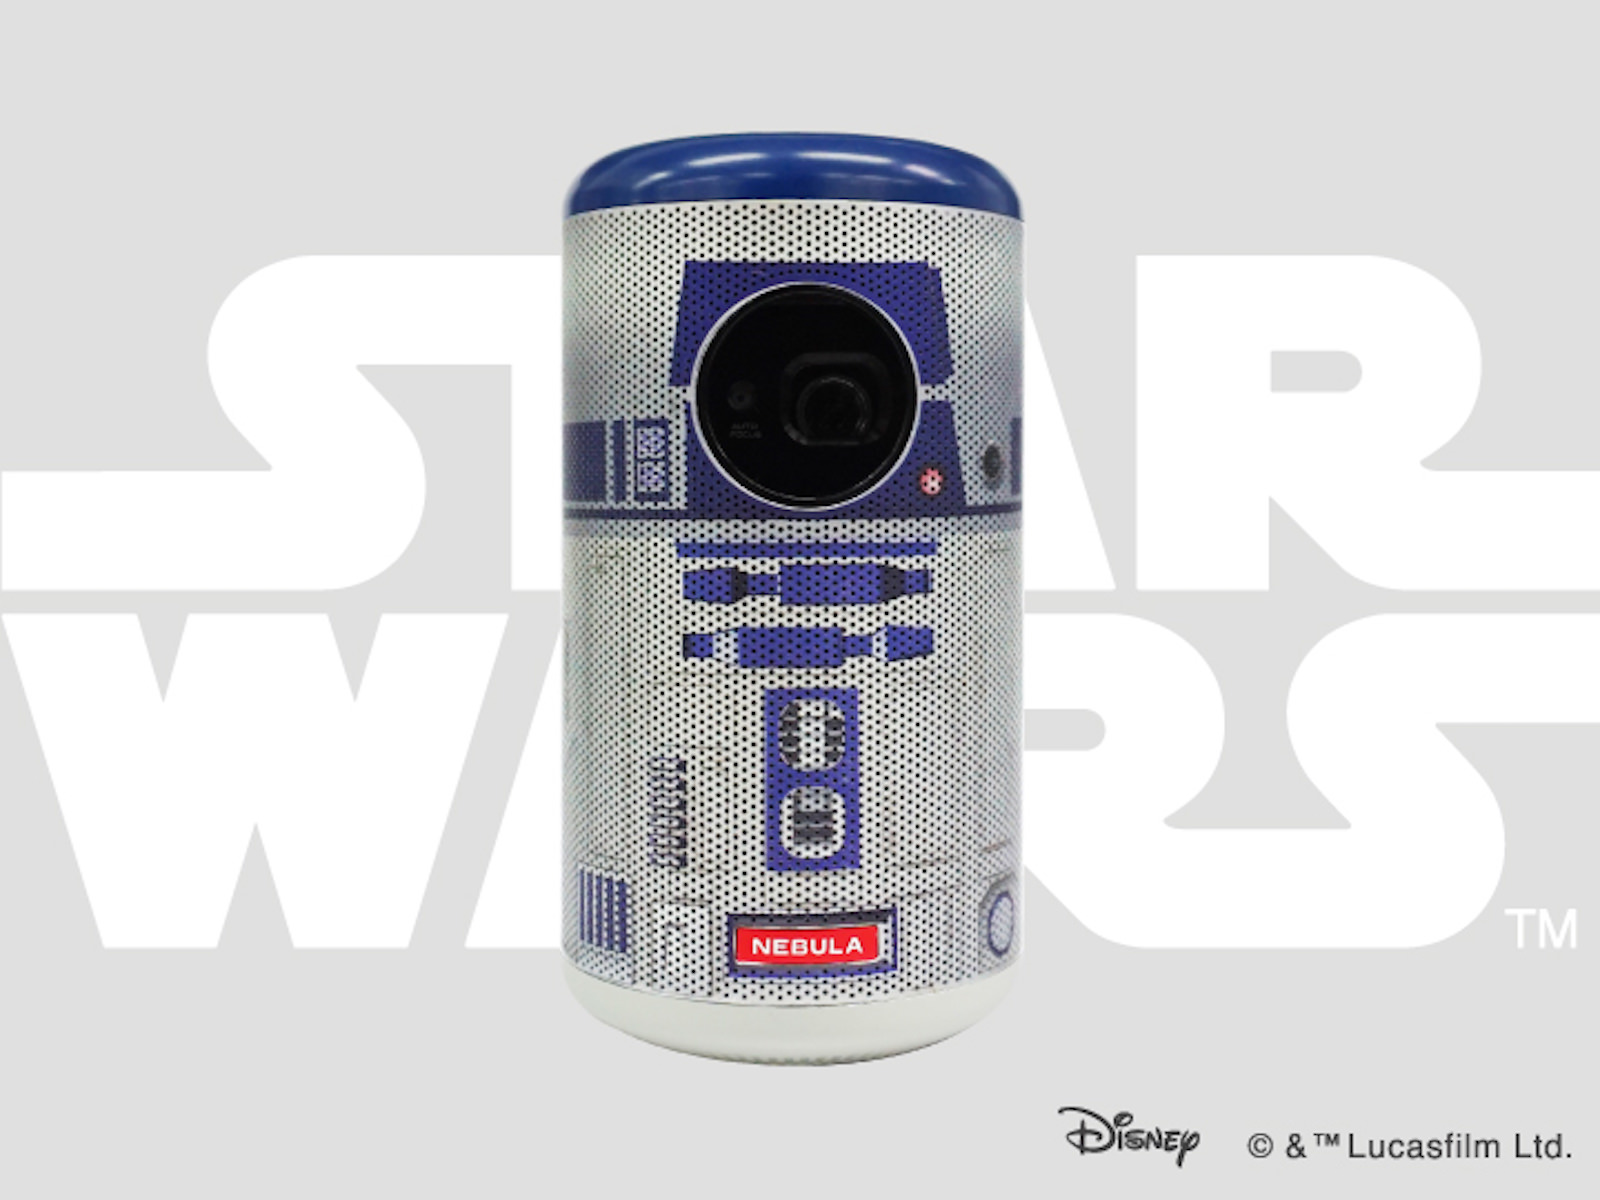 Anker-StarWars-Collaboration-3.jpg